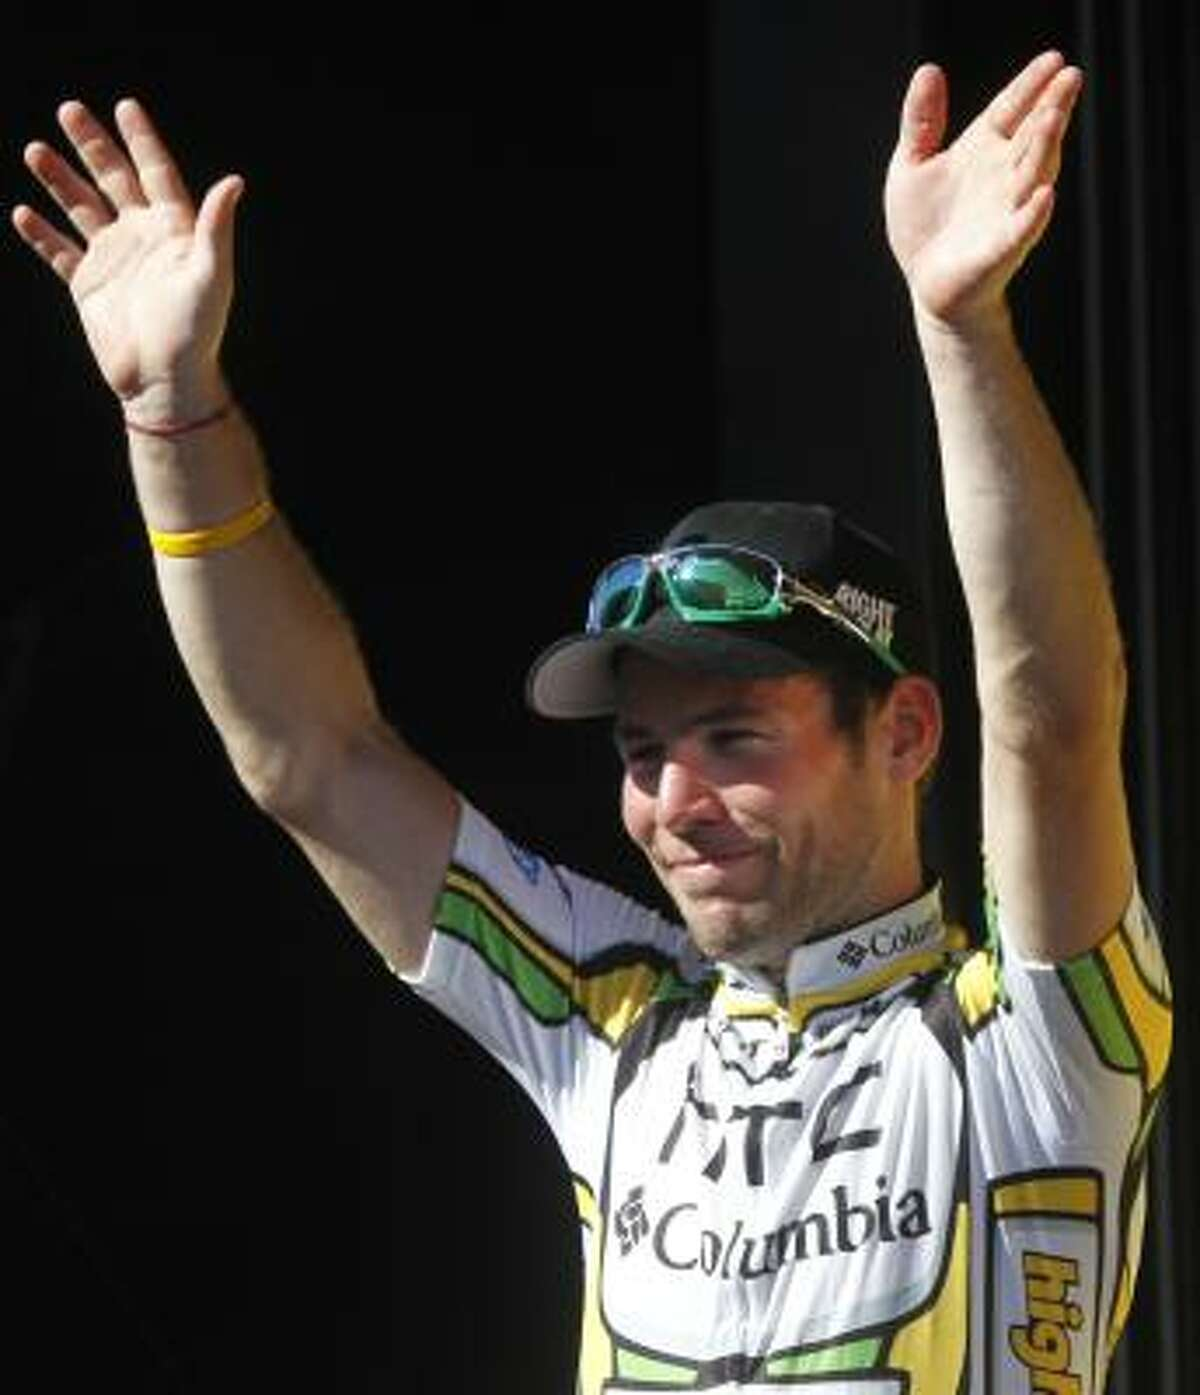 Mark Cavendish greets spectators on the podium after his win in the 11th stage.